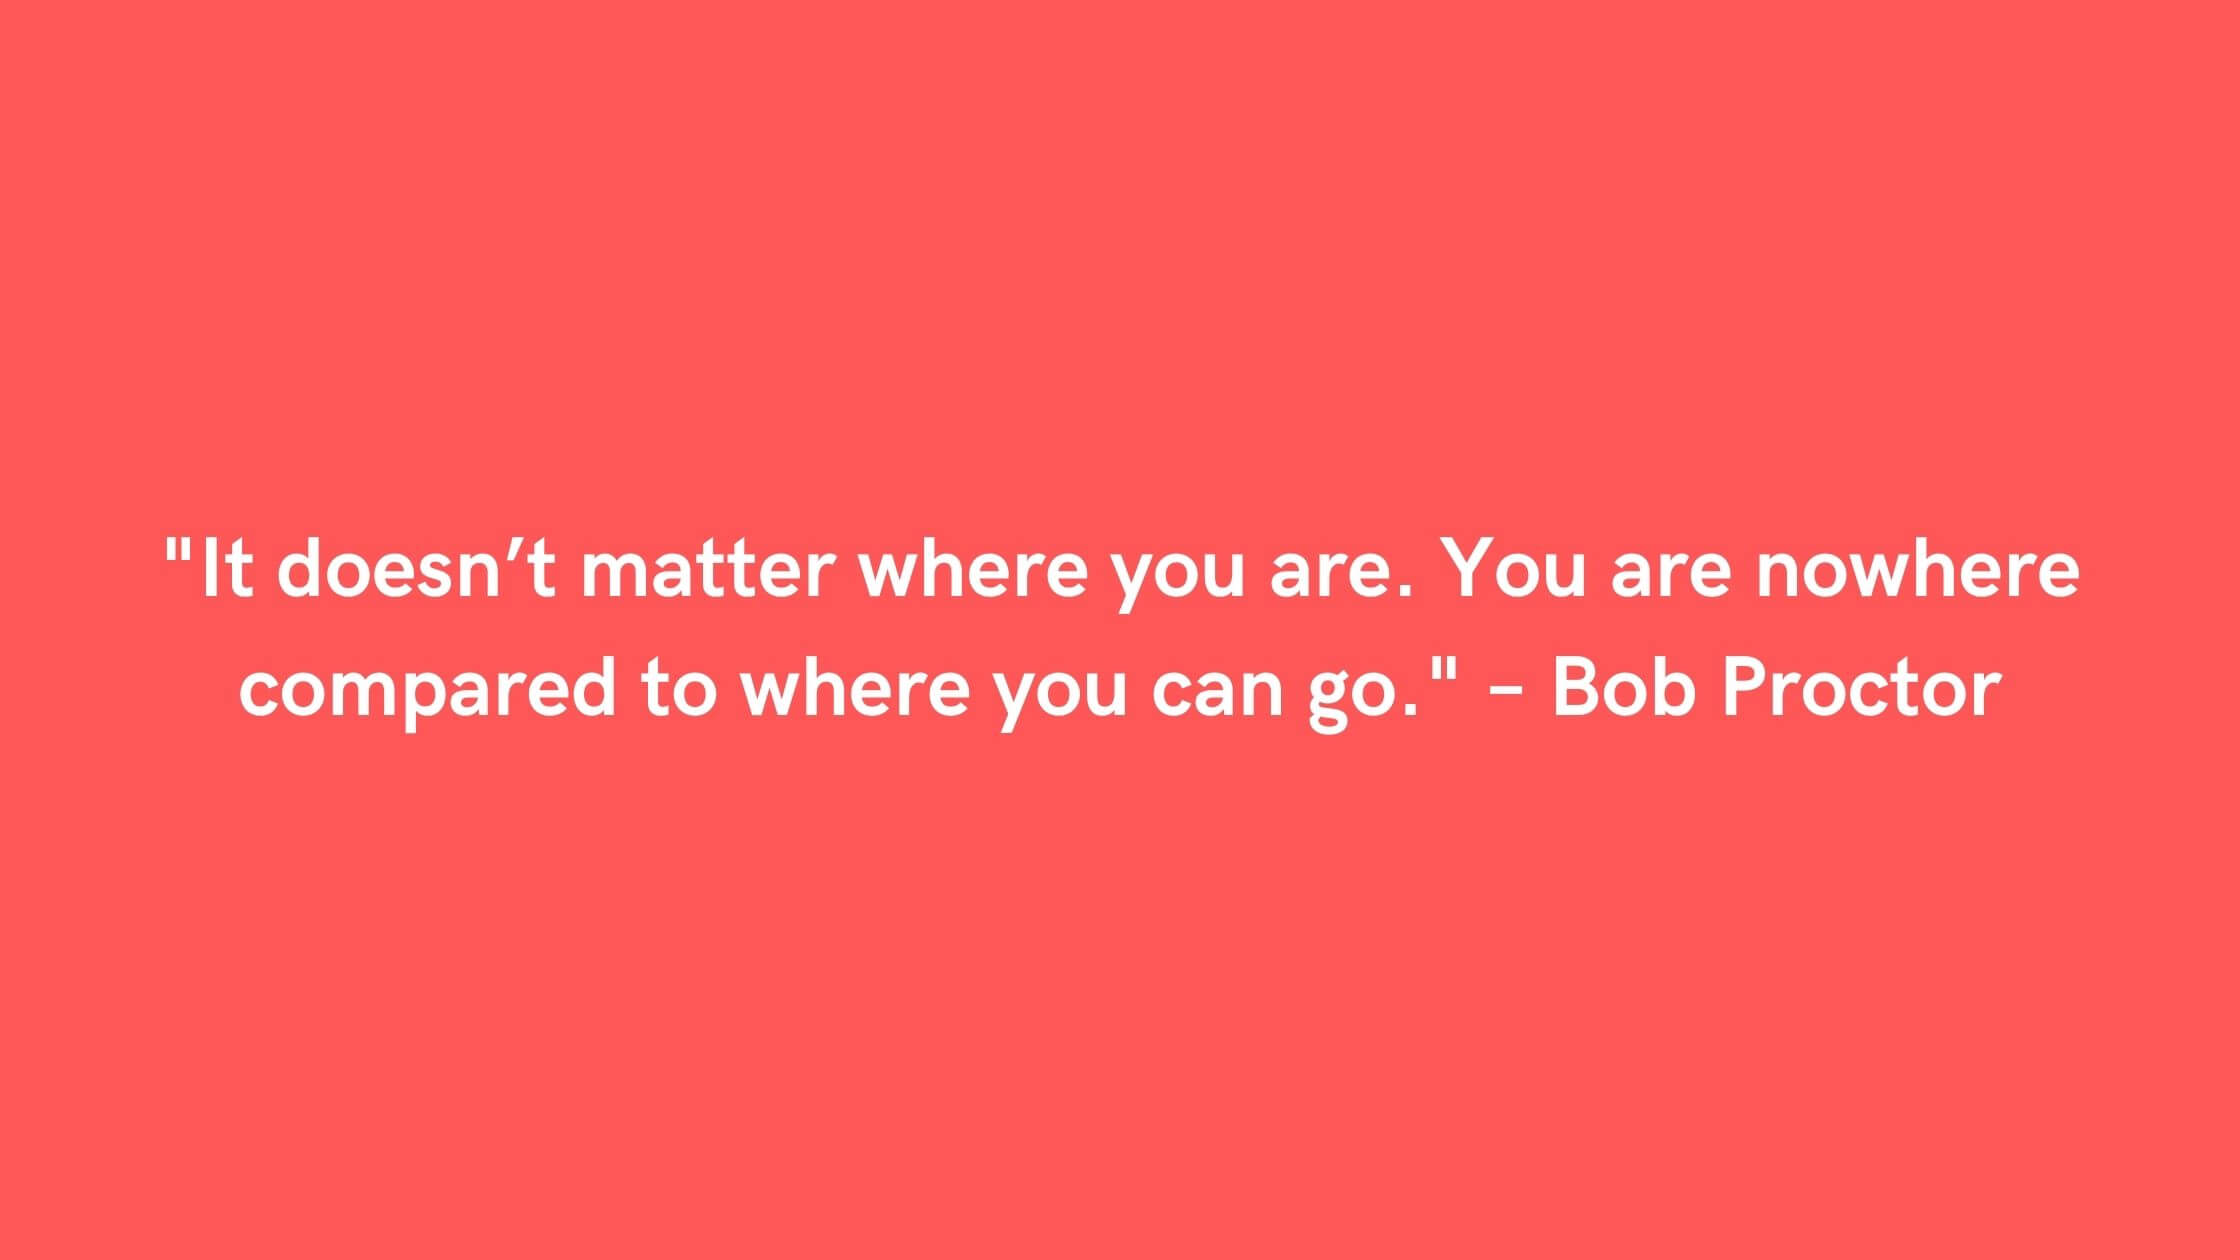 _It doesn't matter where you are. You are nowhere compared to where you can go._ – Bob Proctor